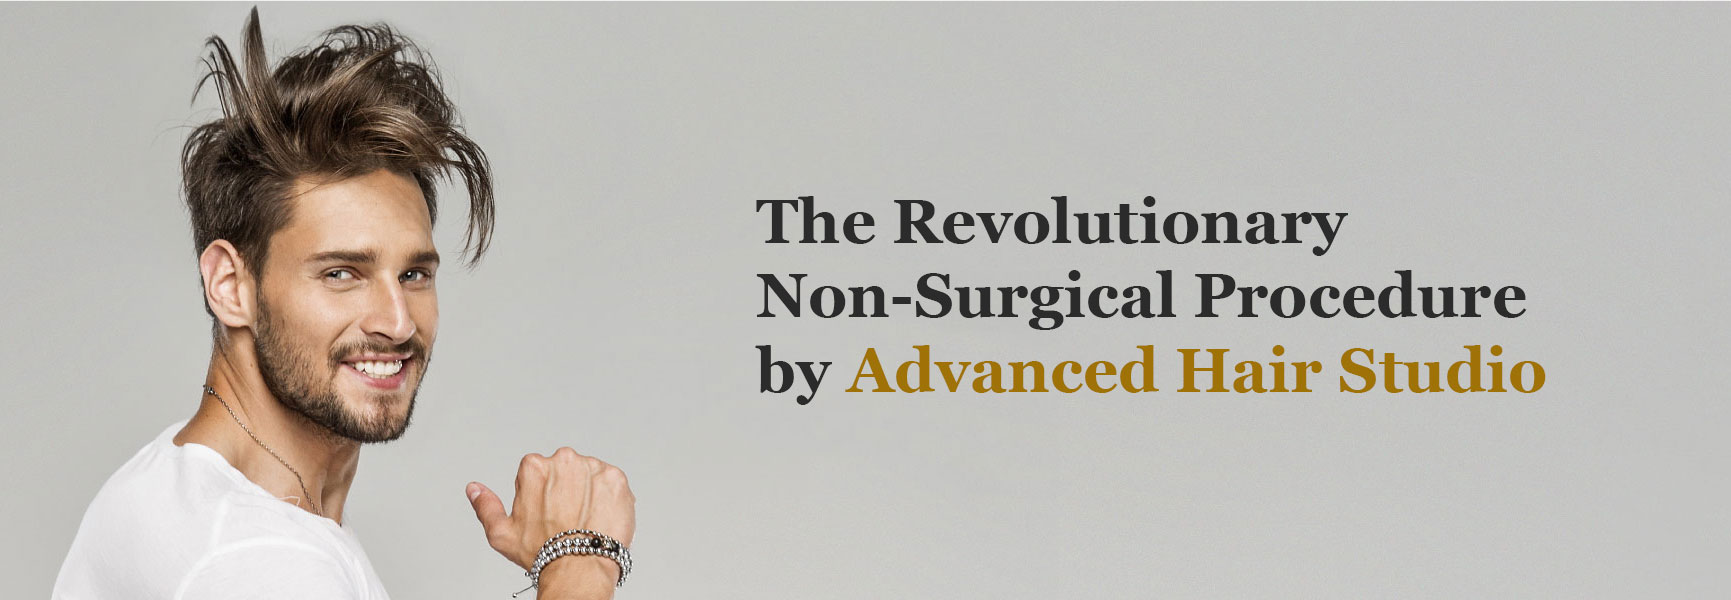 How Advanced Hair Studio has Revolutionised the Non-surgical Procedures market against Traditional options like wigs, weaving or a hair patch